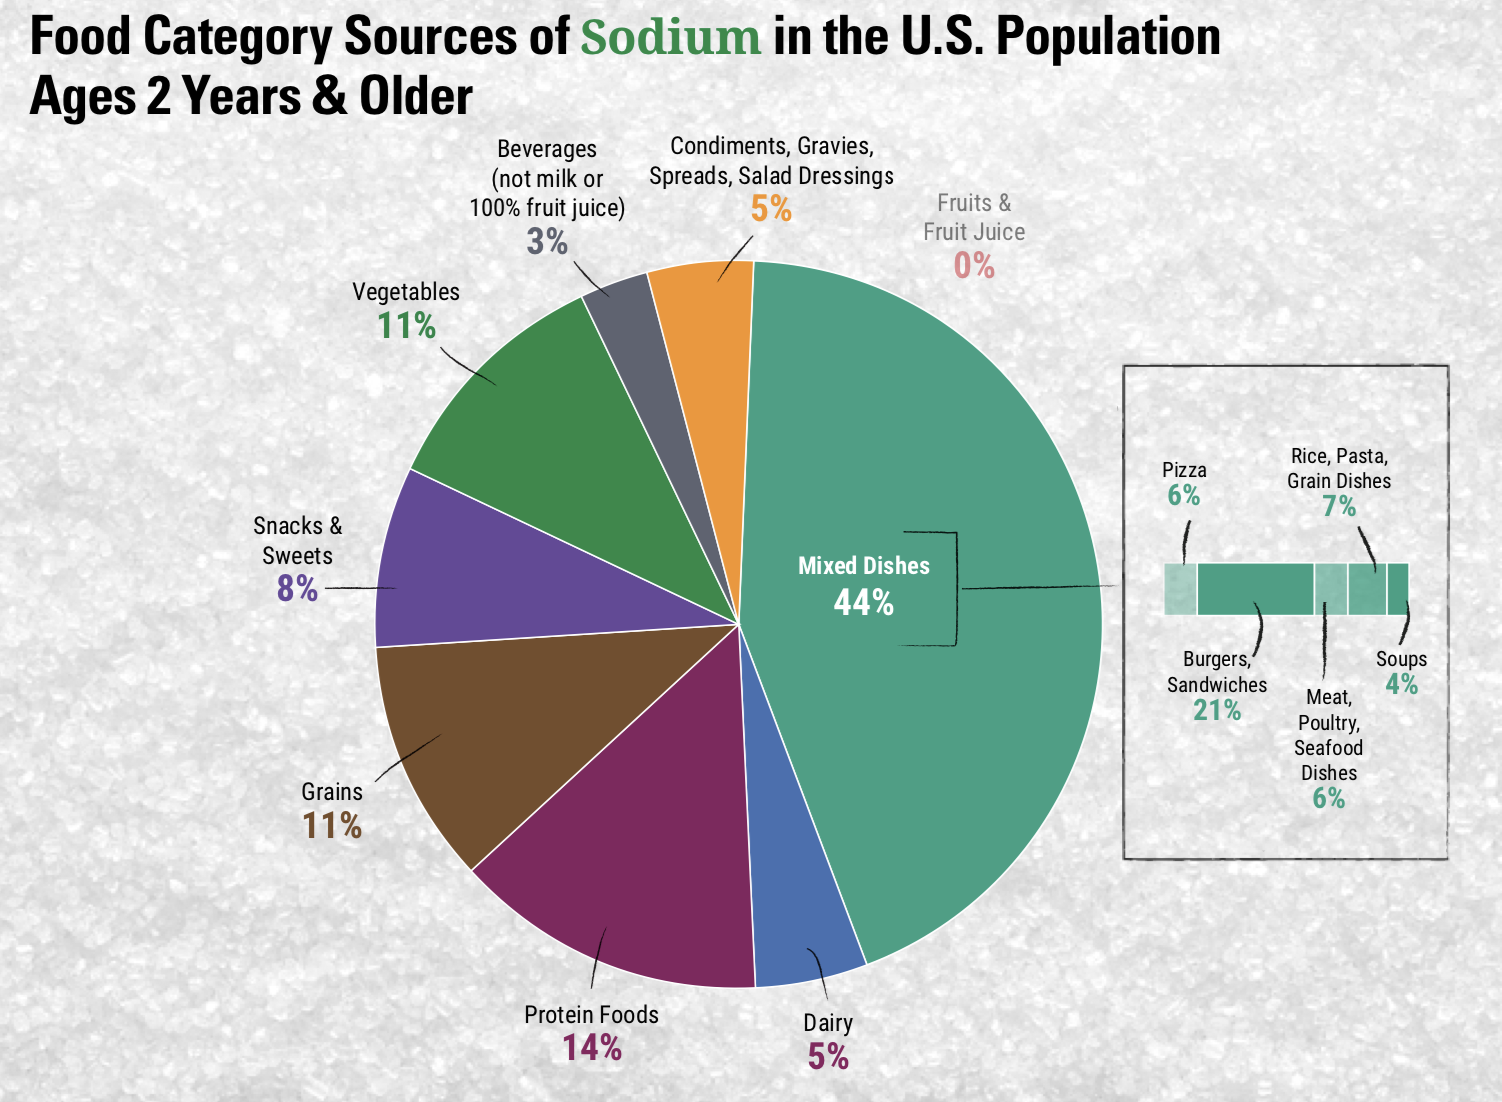 """This image shows """"Food Category Sources of Sodium in the U.S. Population Ages 2 Years & Older."""" The majority of sodium comes from mixed dishes like pizza, burgers sandwiches, and grain dishes (44%), followed by protein foods (14%), grains (11%), vegetables (11%), snacks and sweets (8%), condiments (5%), dairy (5%), and beverages, not including milk or 100% fruit juice (3%)."""